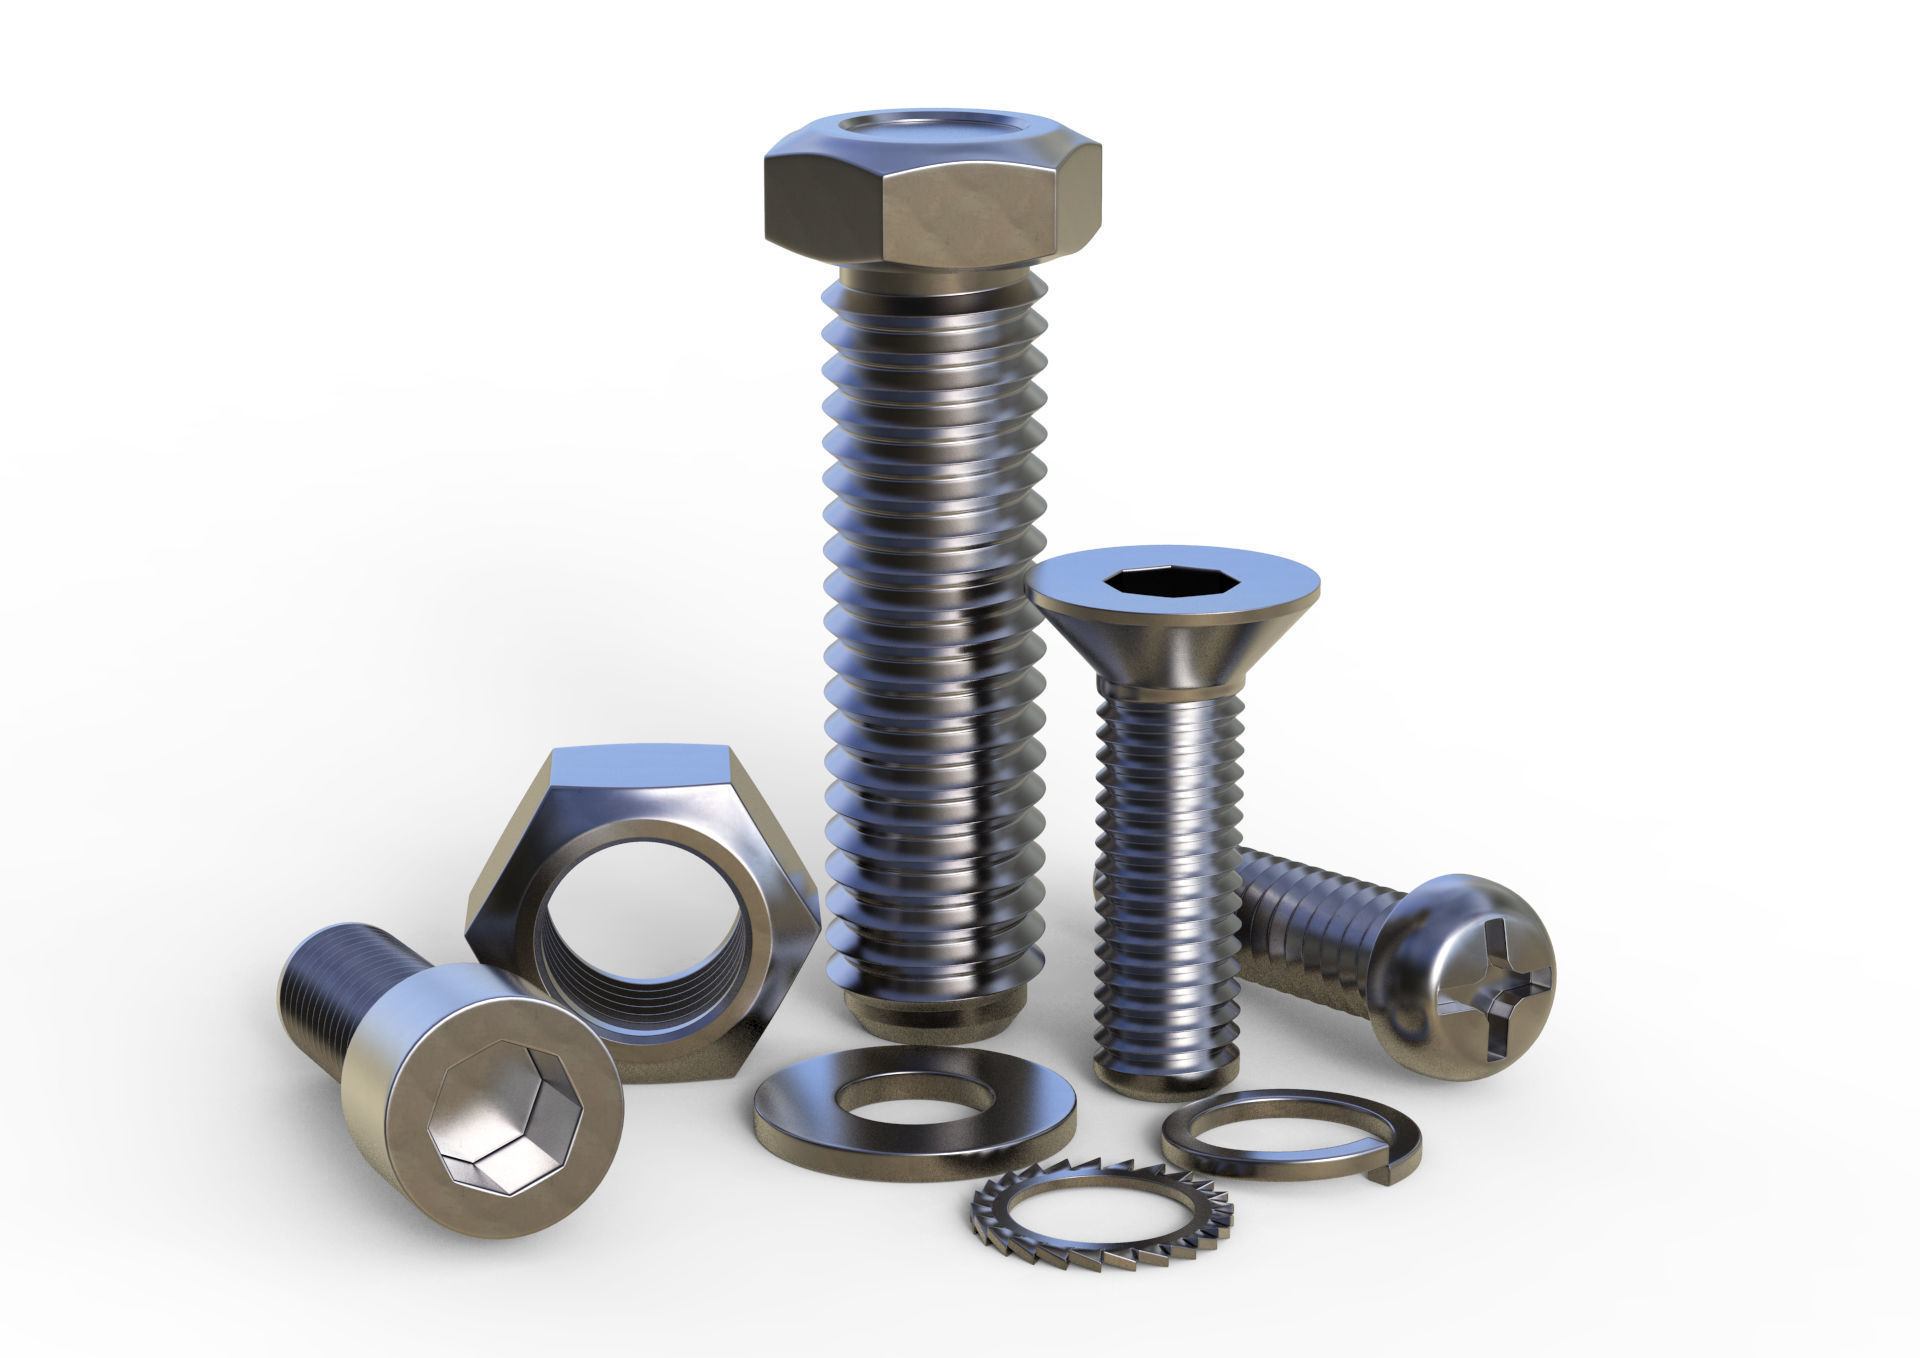 Different Types of Inconel 600 Bolts and Nuts